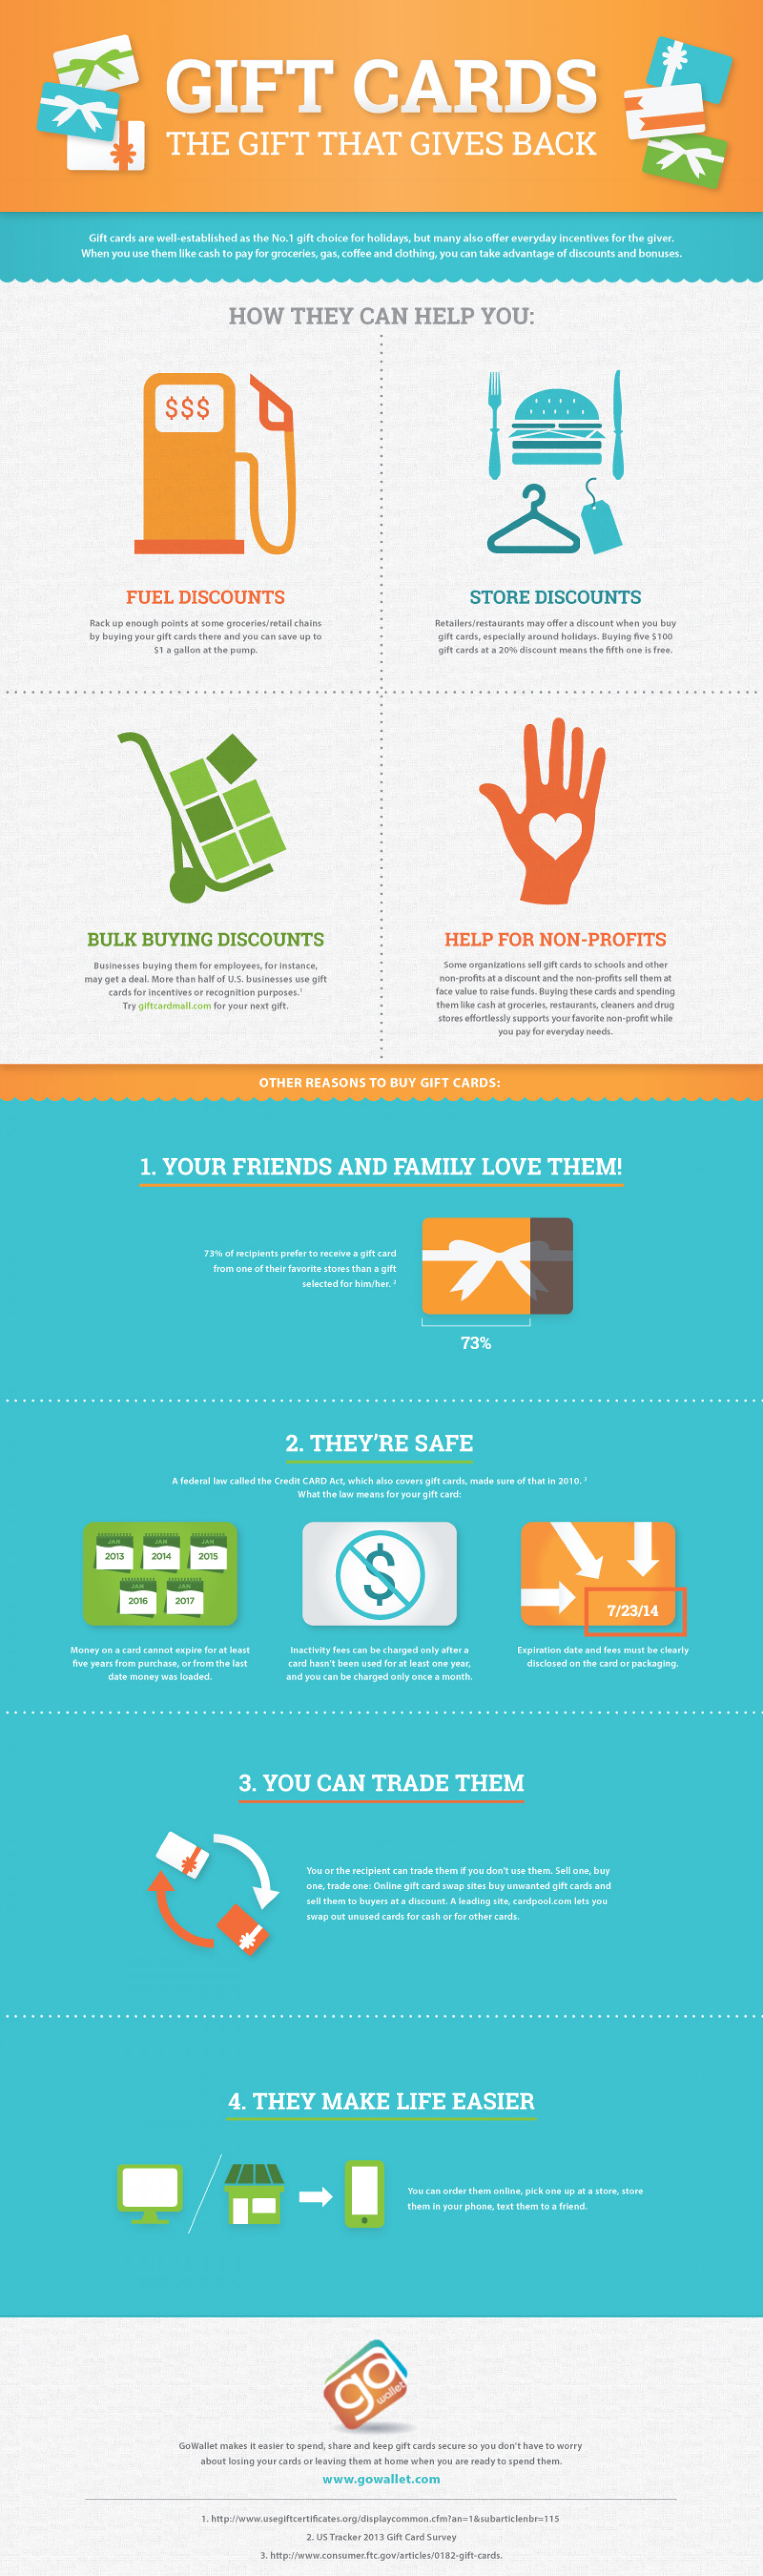 Gift Cards - The Gift That Gives Back Infographic